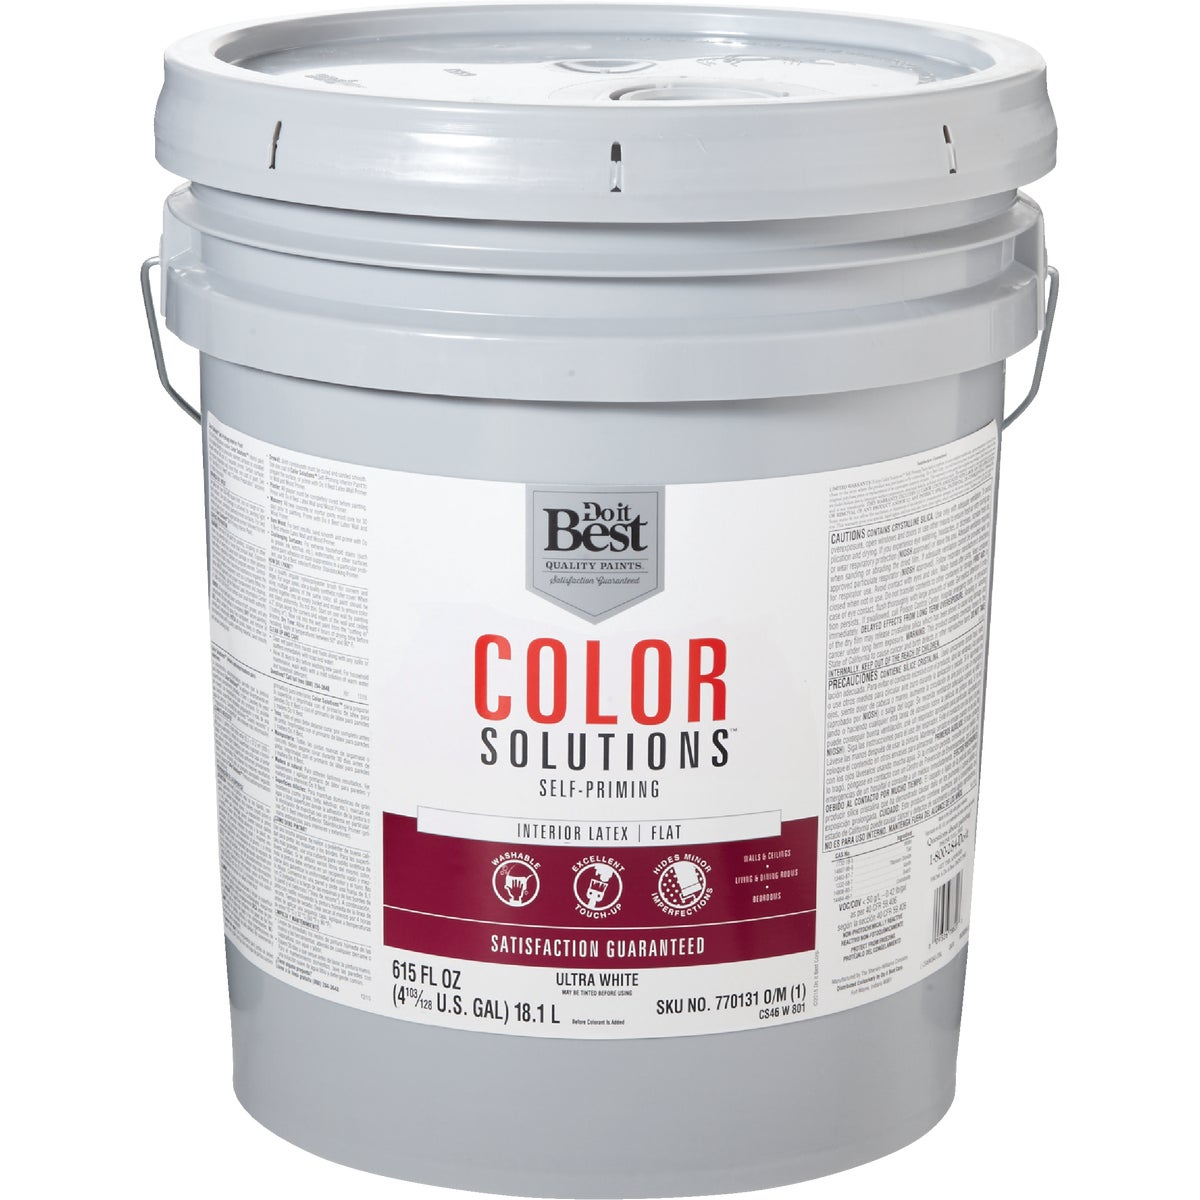 INT FLAT ULTRA WHT PAINT - CS46W0801-20 by Do it Best